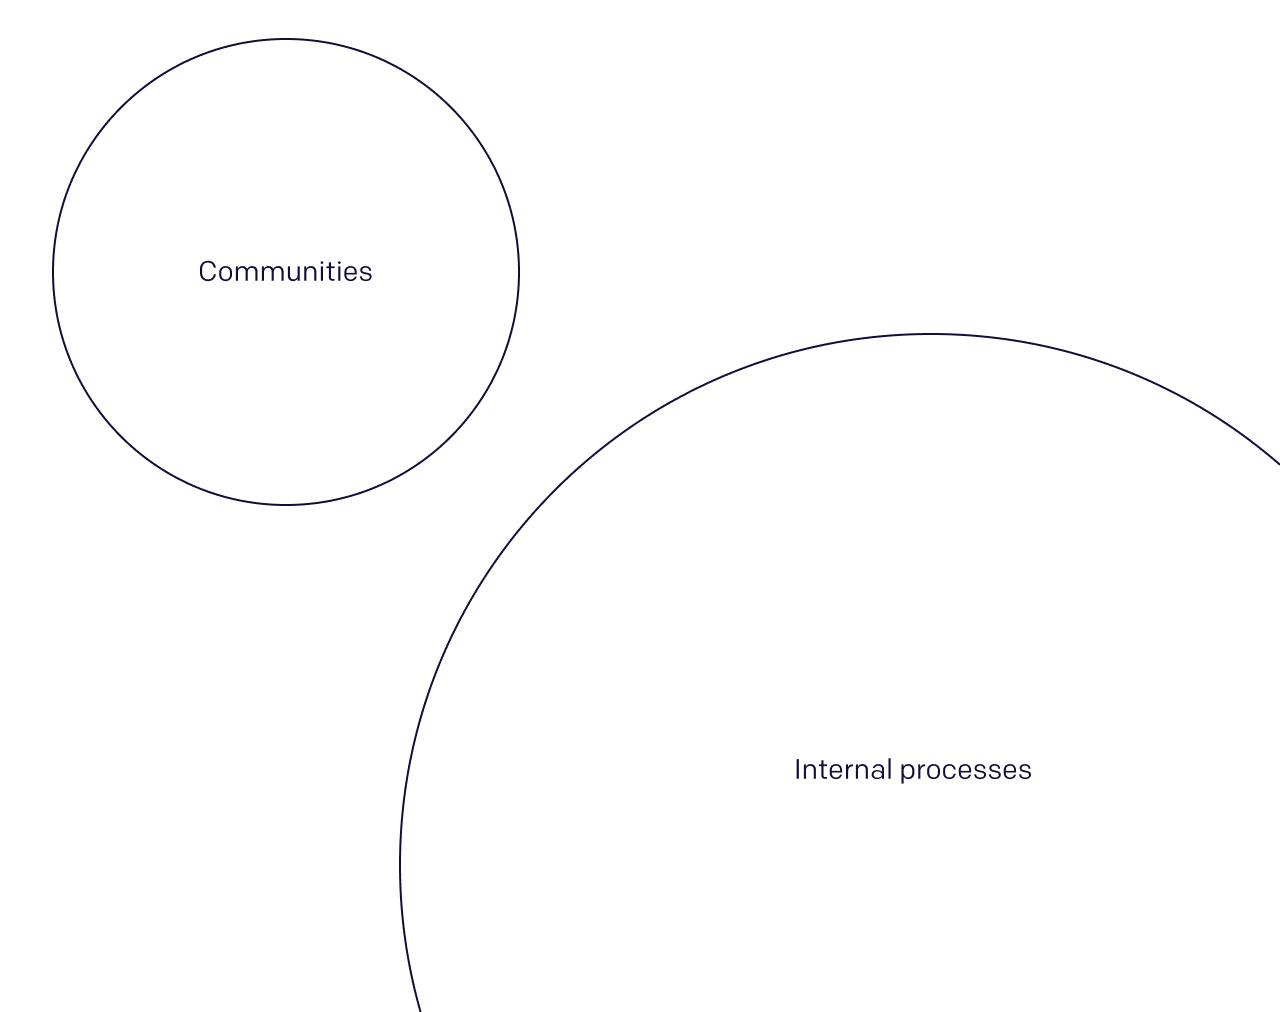 An image depicting how user communities are commonly disconnected from internal company processes